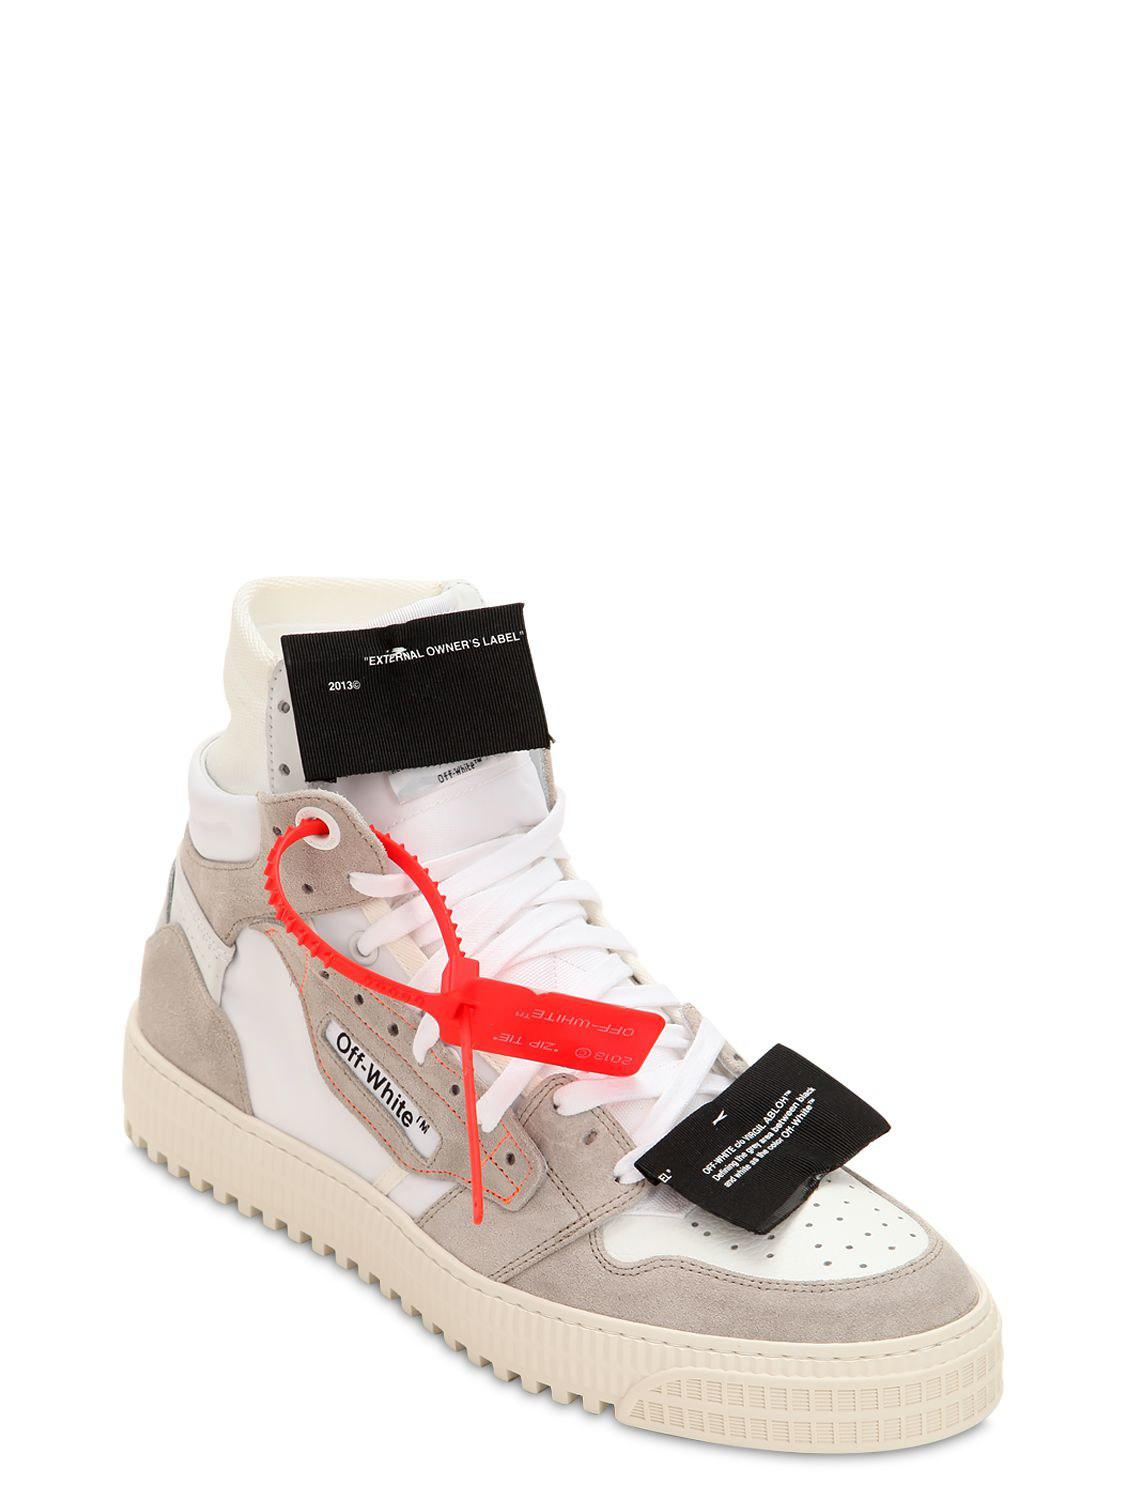 a40290ad68e279 Off-White c/o Virgil Abloh Off Court High Top Sneakers for Men - Lyst